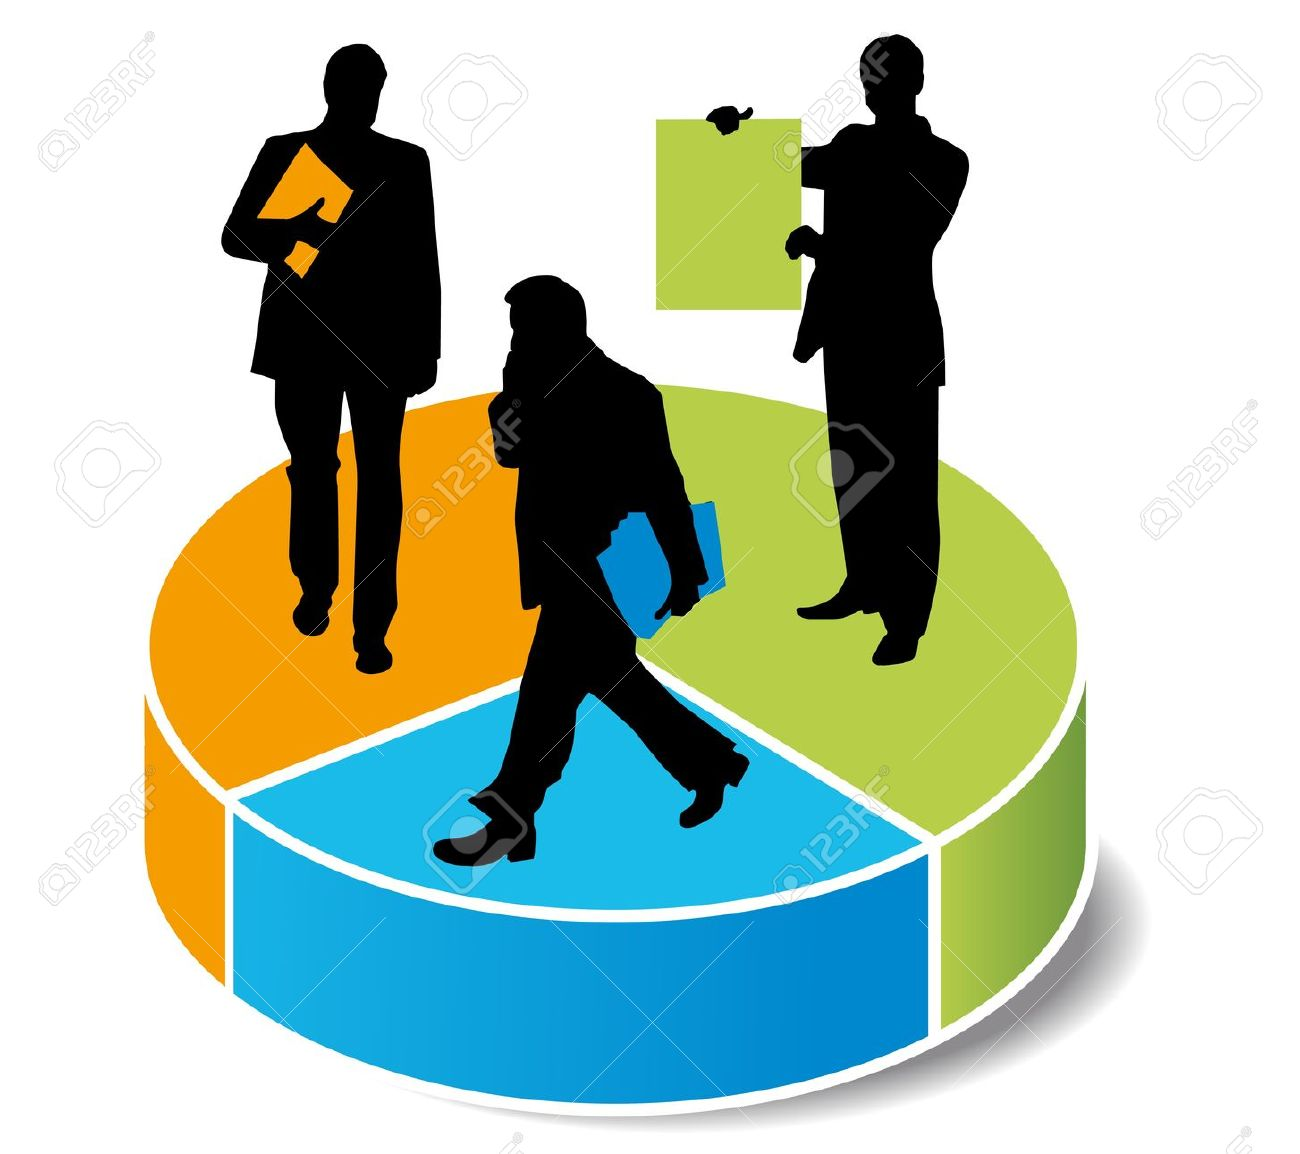 Accounting clipart managerial accounting.  collection of high